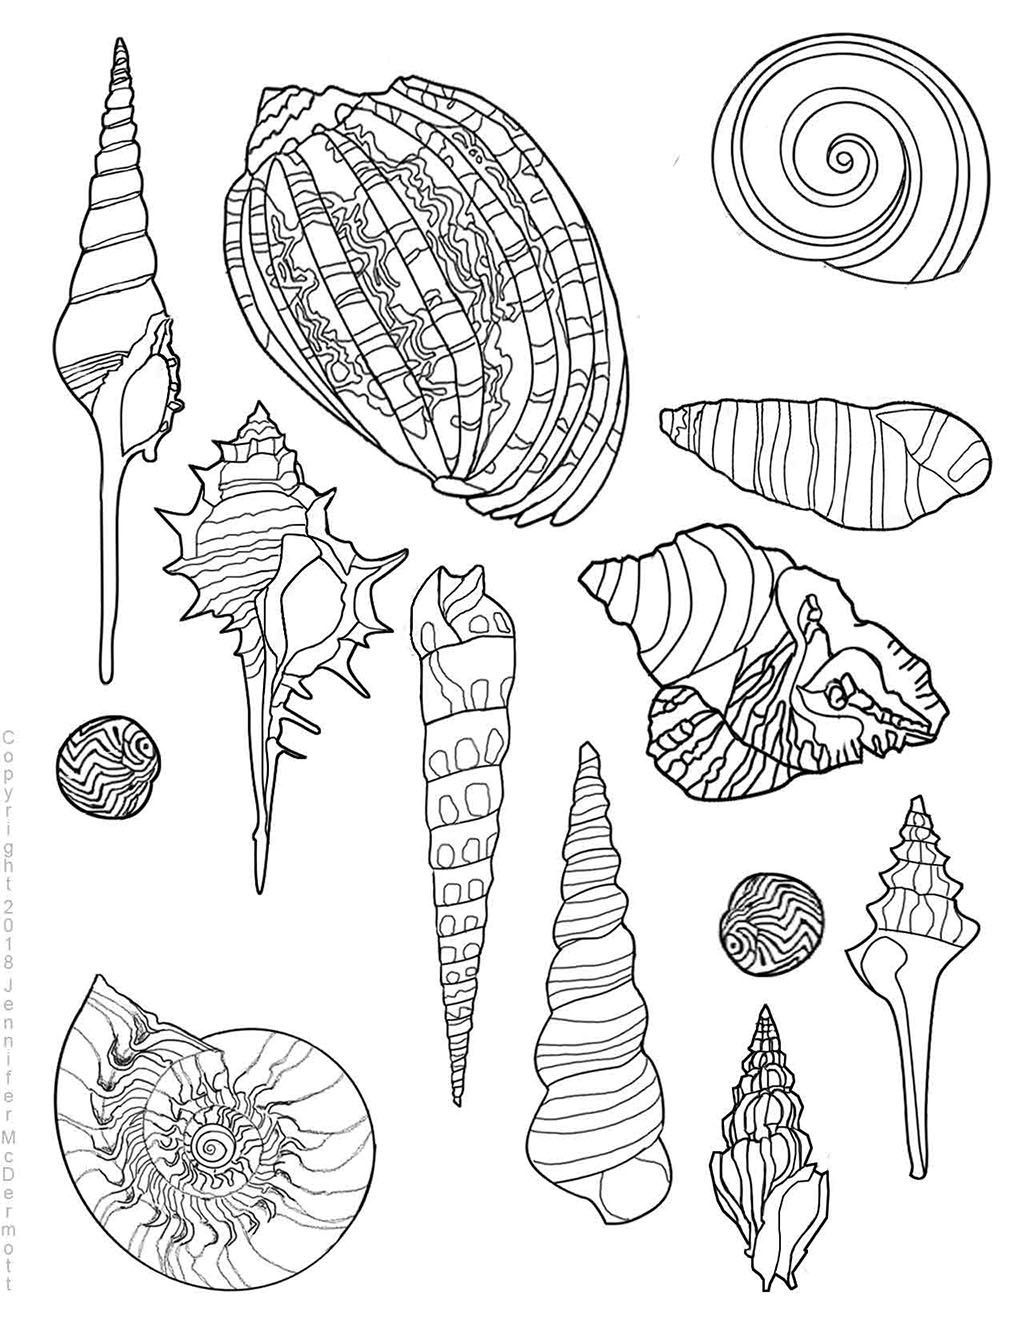 This Is A Free Seashell Design Coloring Page That Anyone May Download And Color I Have 5 More Seashell Coloring De Turtle Outline Free Clip Art Coloring Pages